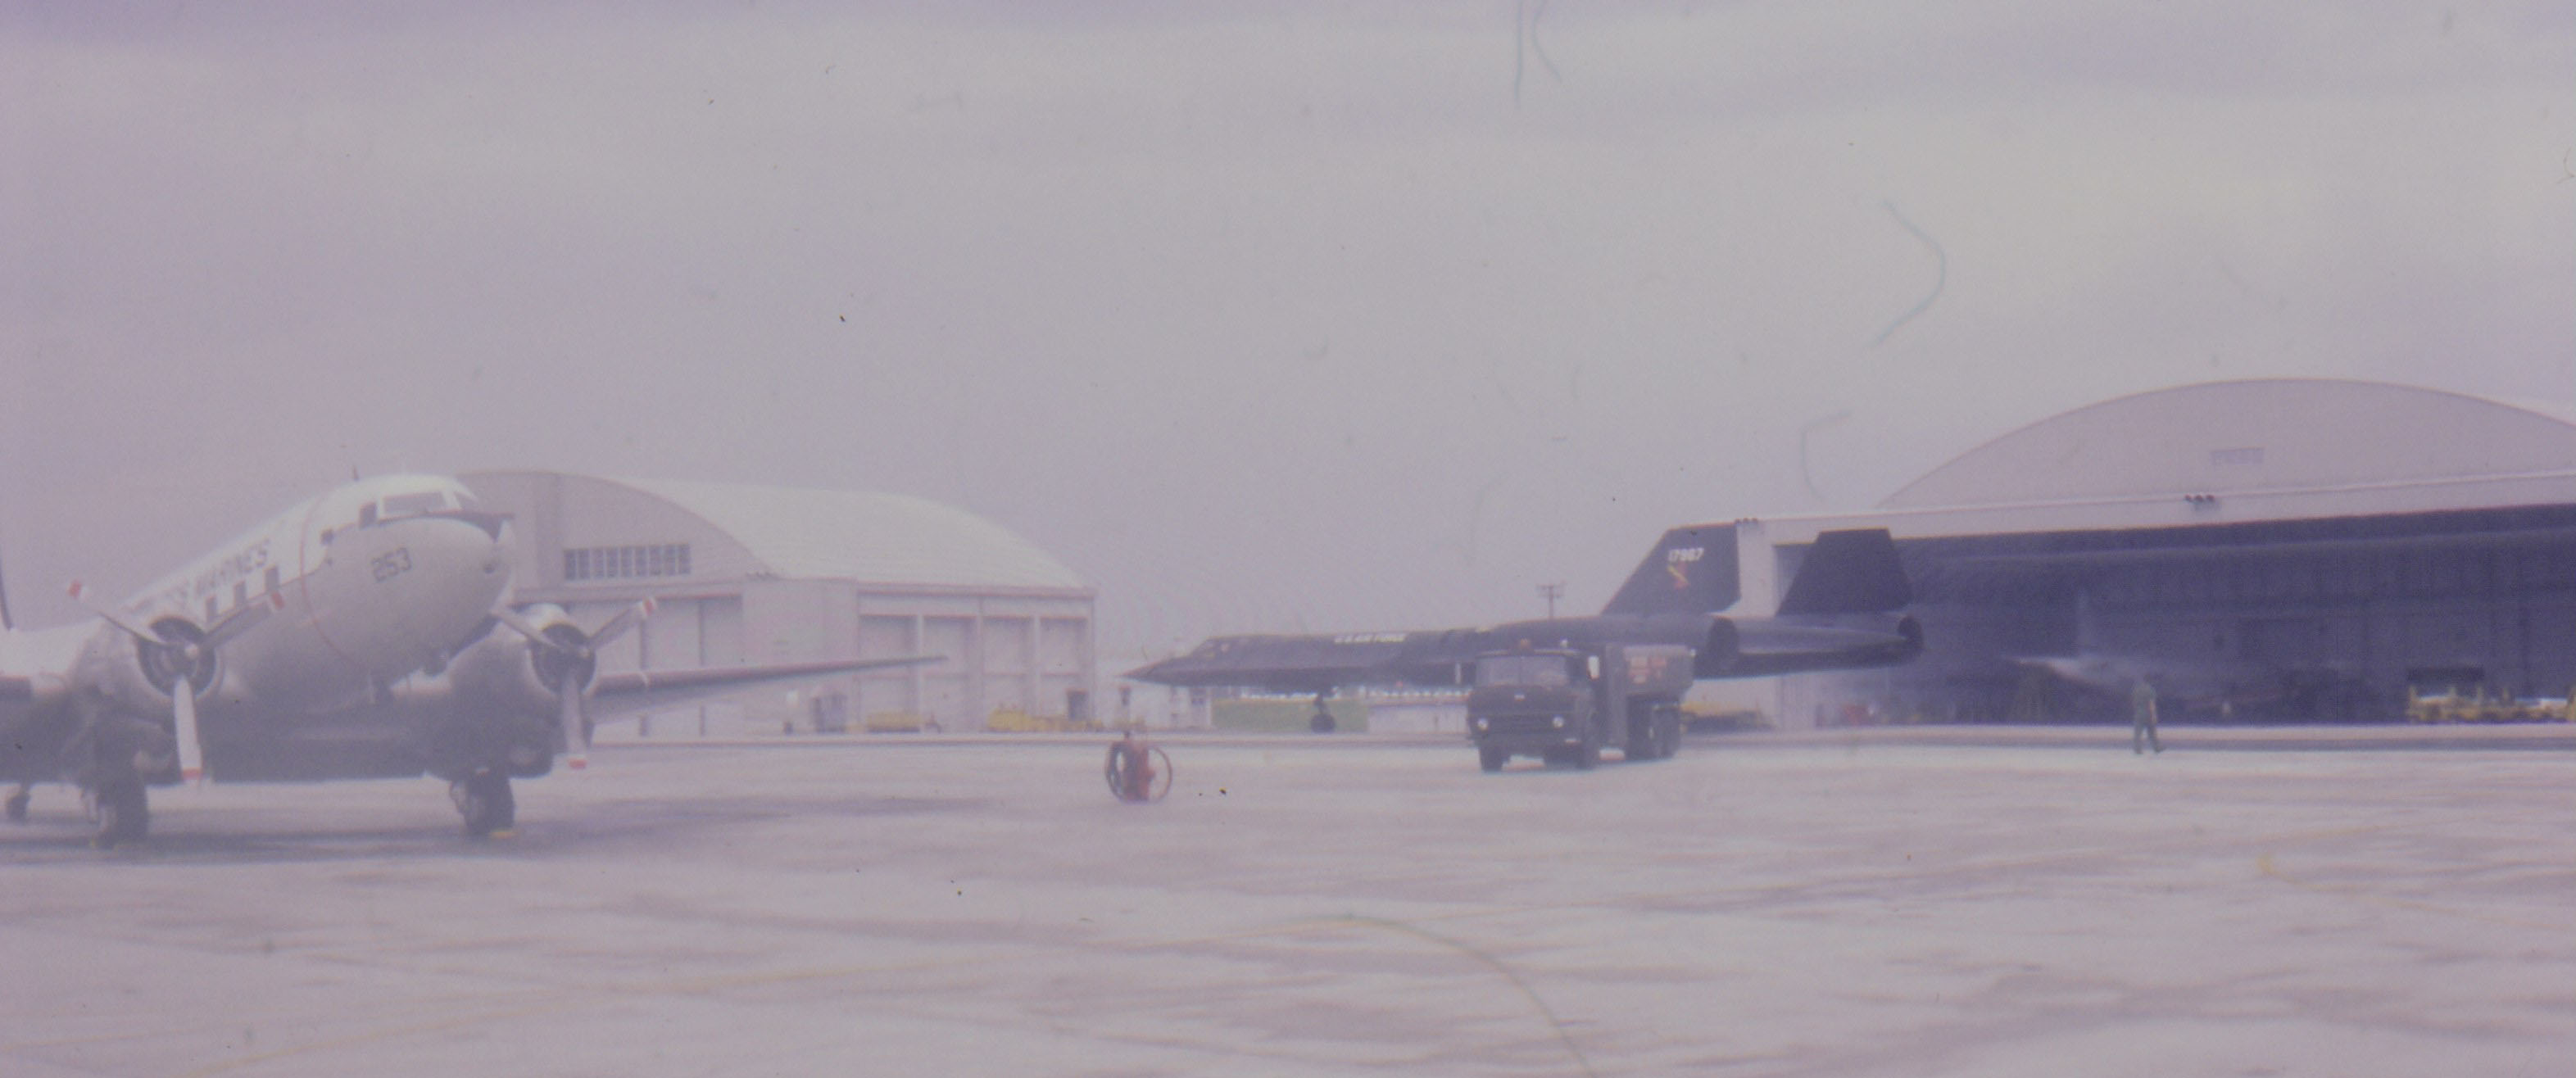 SR-71 Blackbird taxiing at Kadena AB, Okinawa